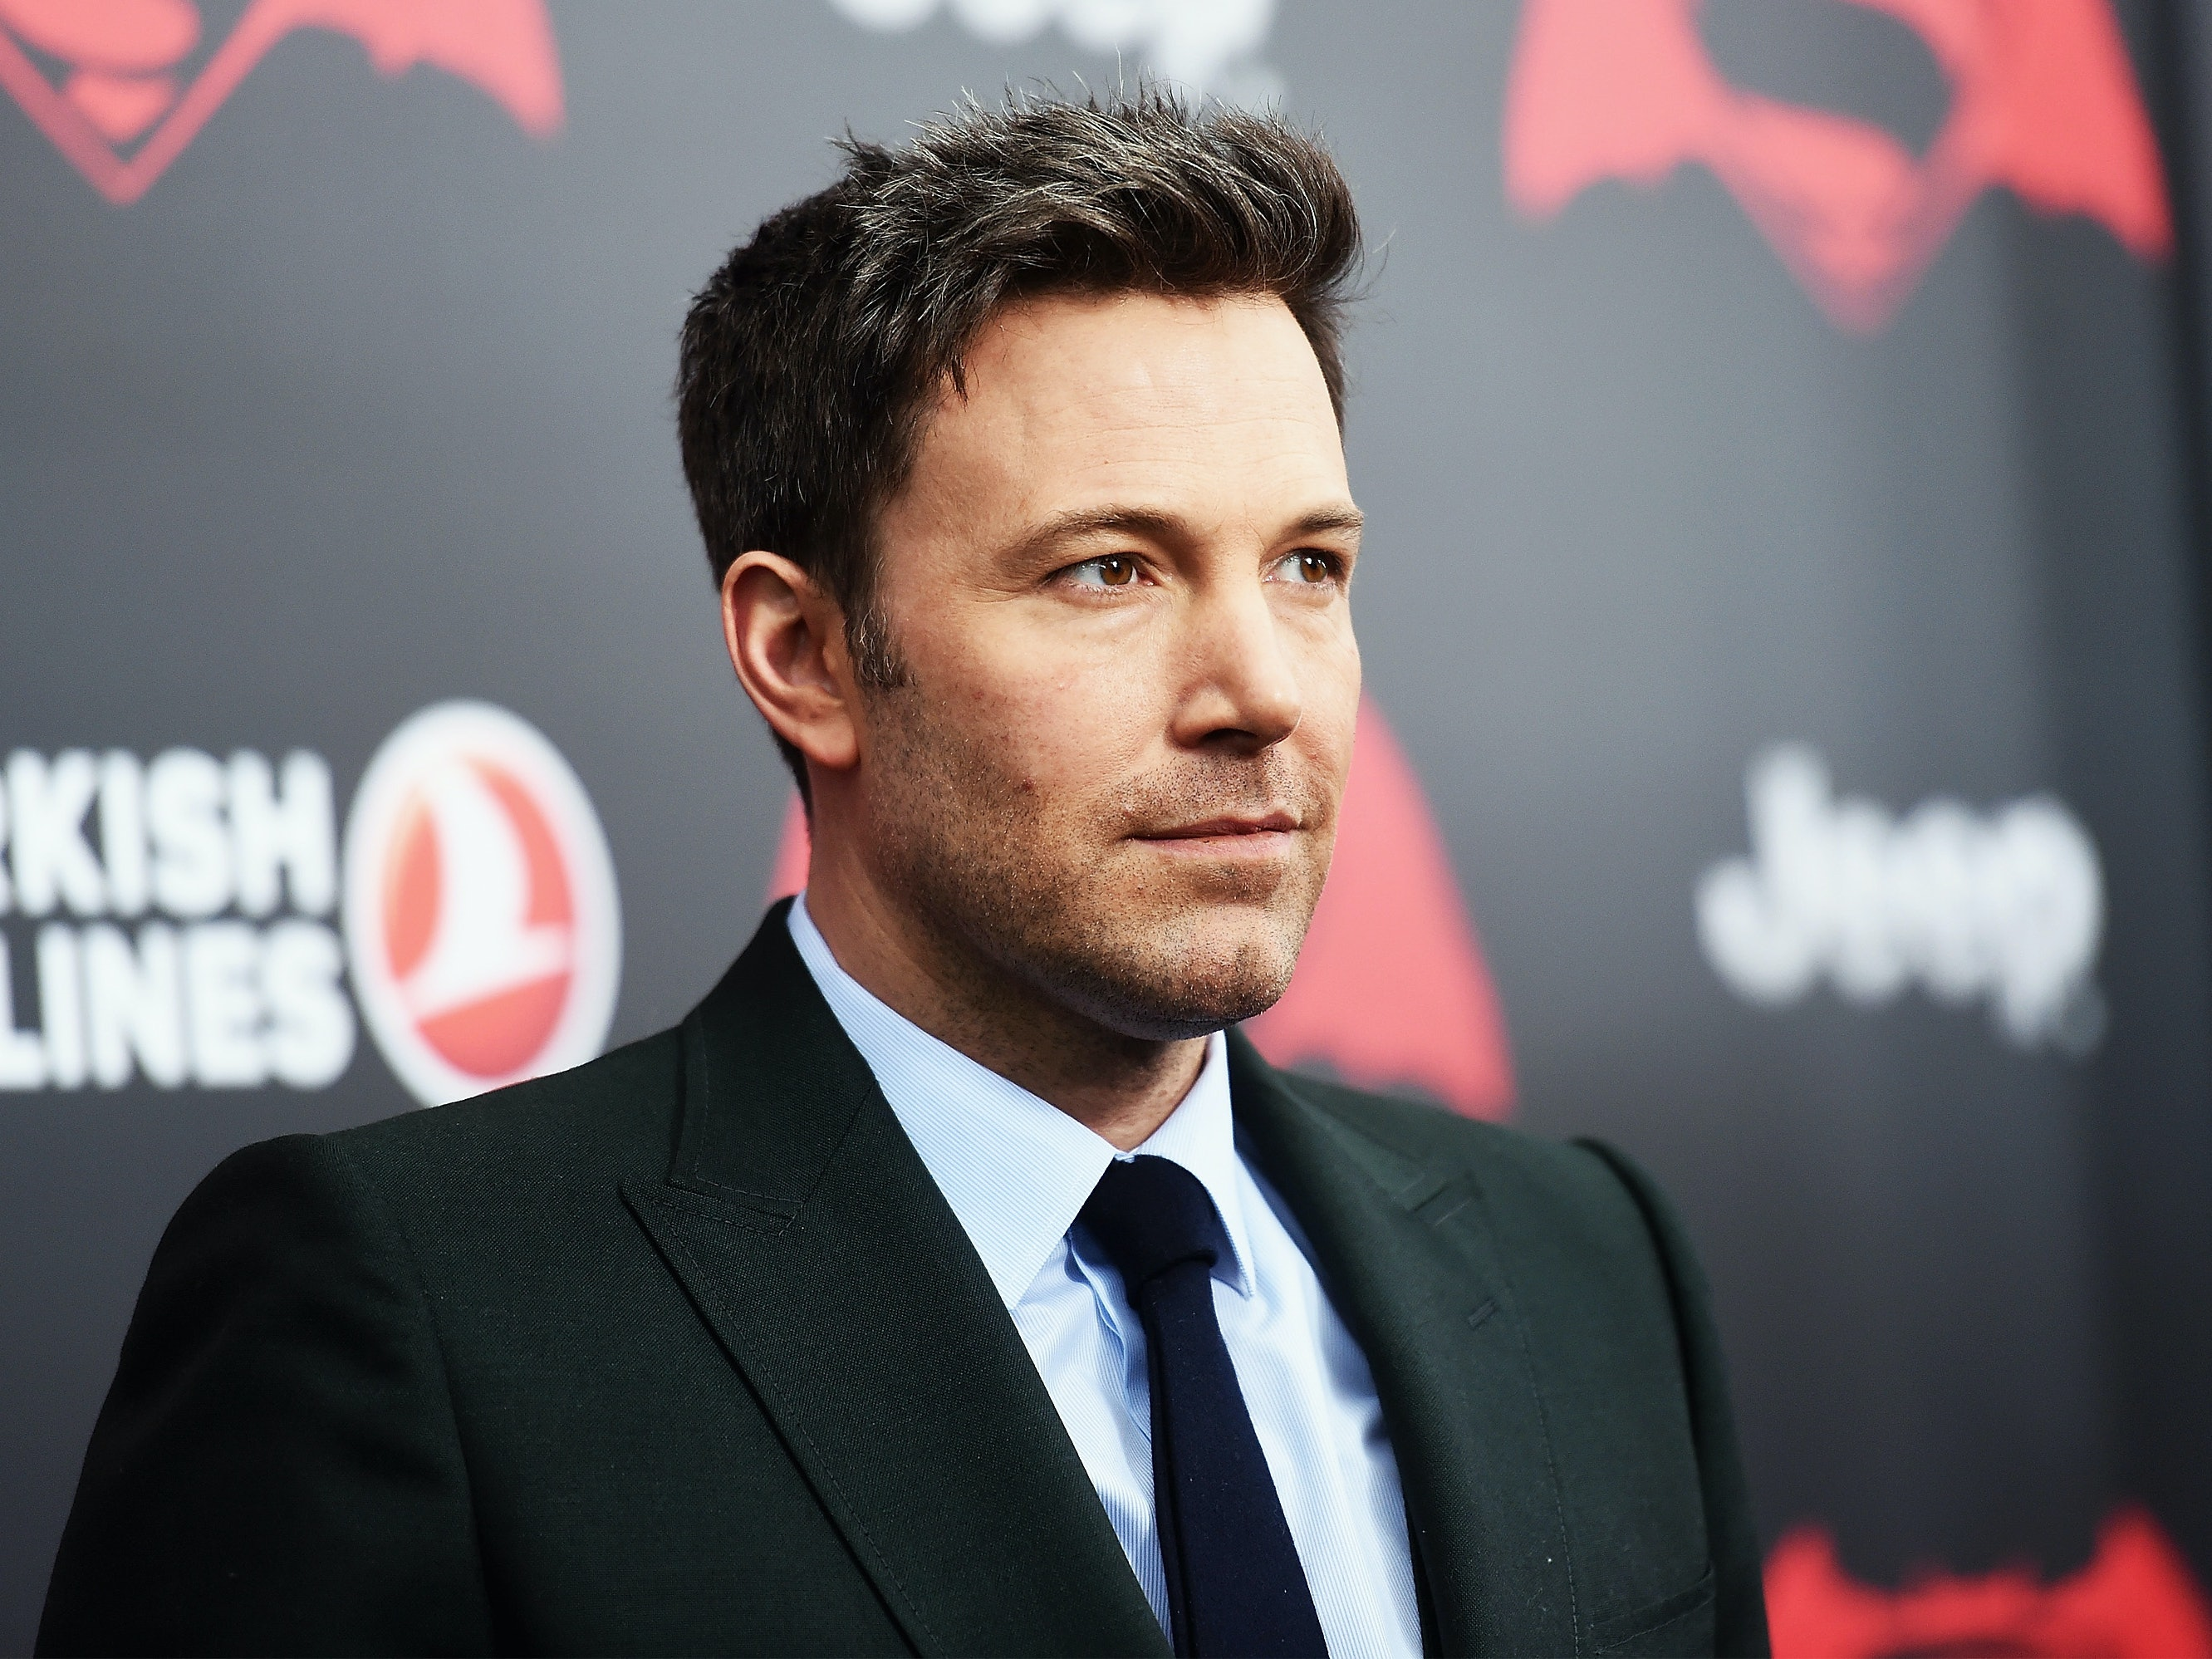 Warner Brothers Confirms Ben Affleck is Getting a Standalone Batman Movie